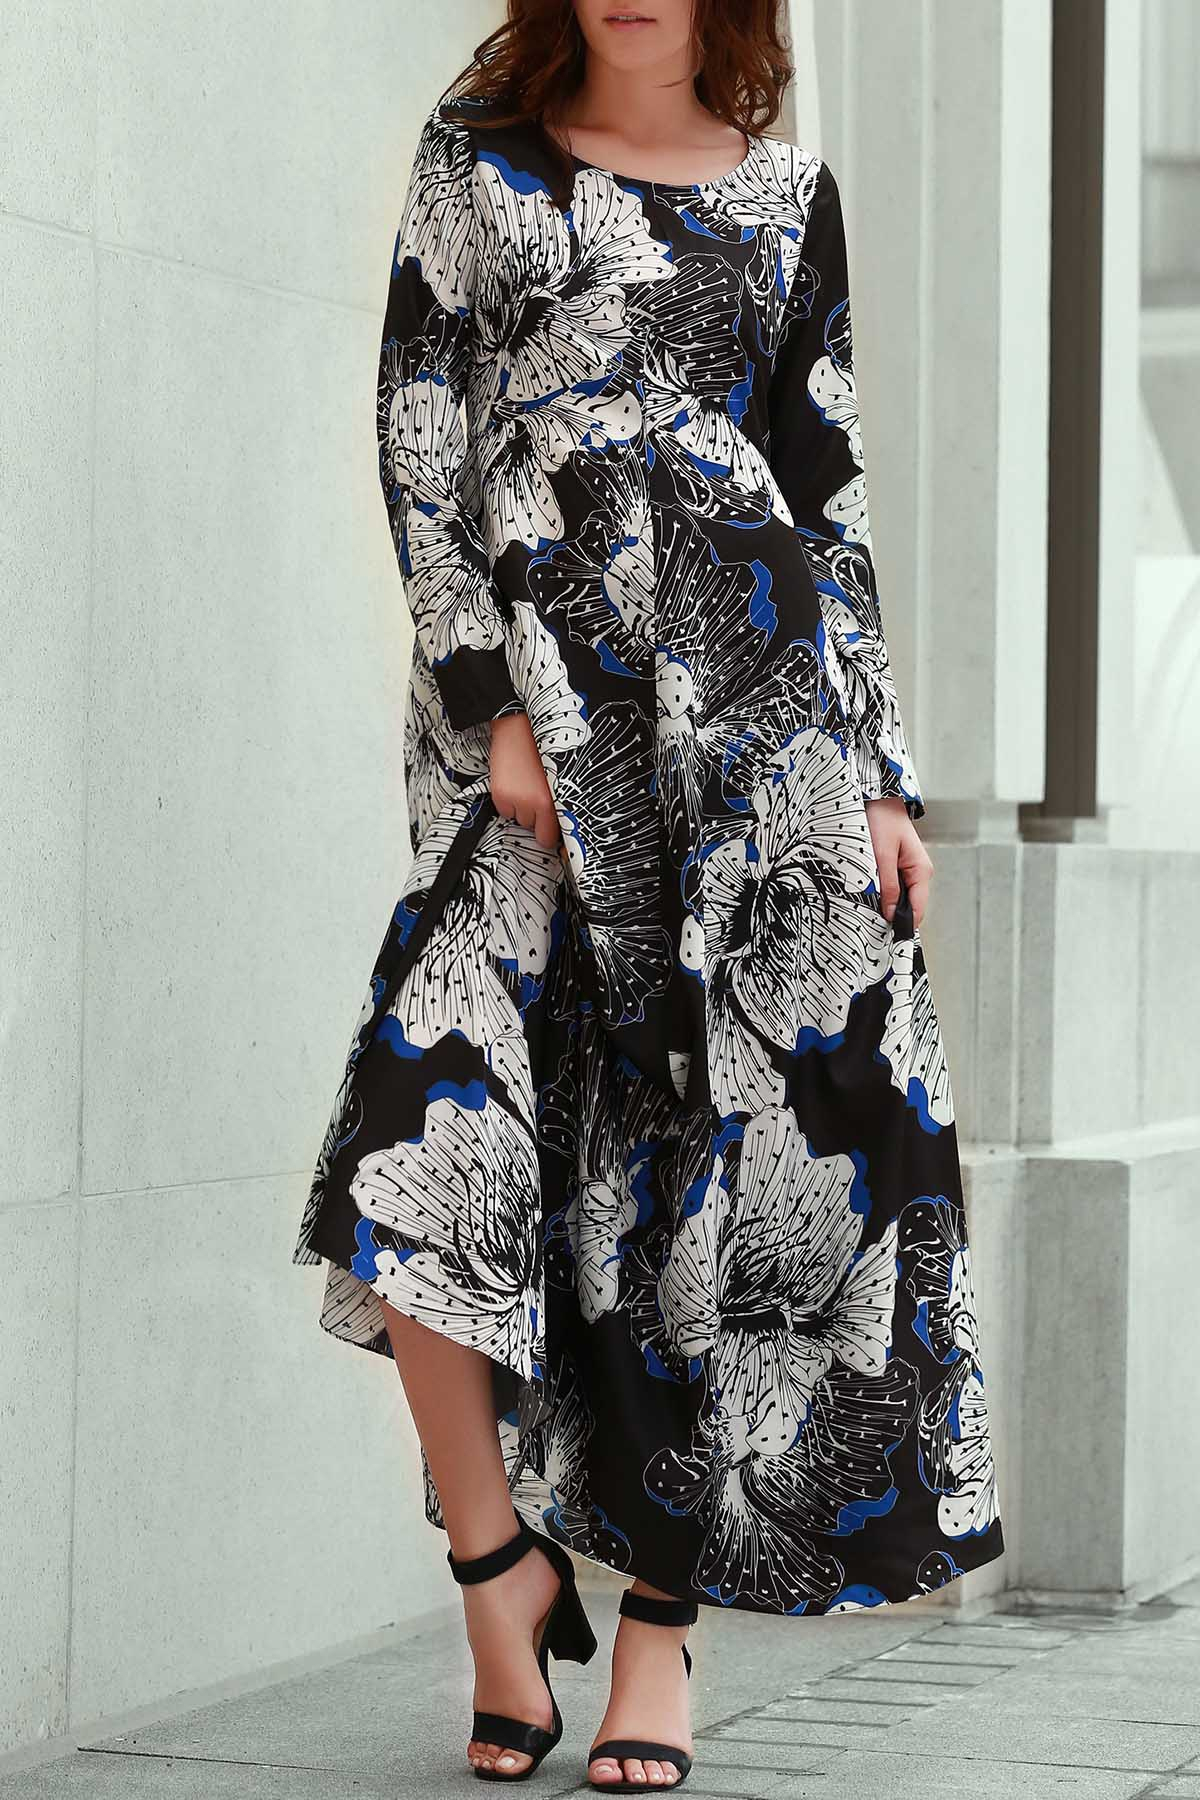 Zaful   BLACK Long Sleeve Large Floral Prom Dress   Clouty